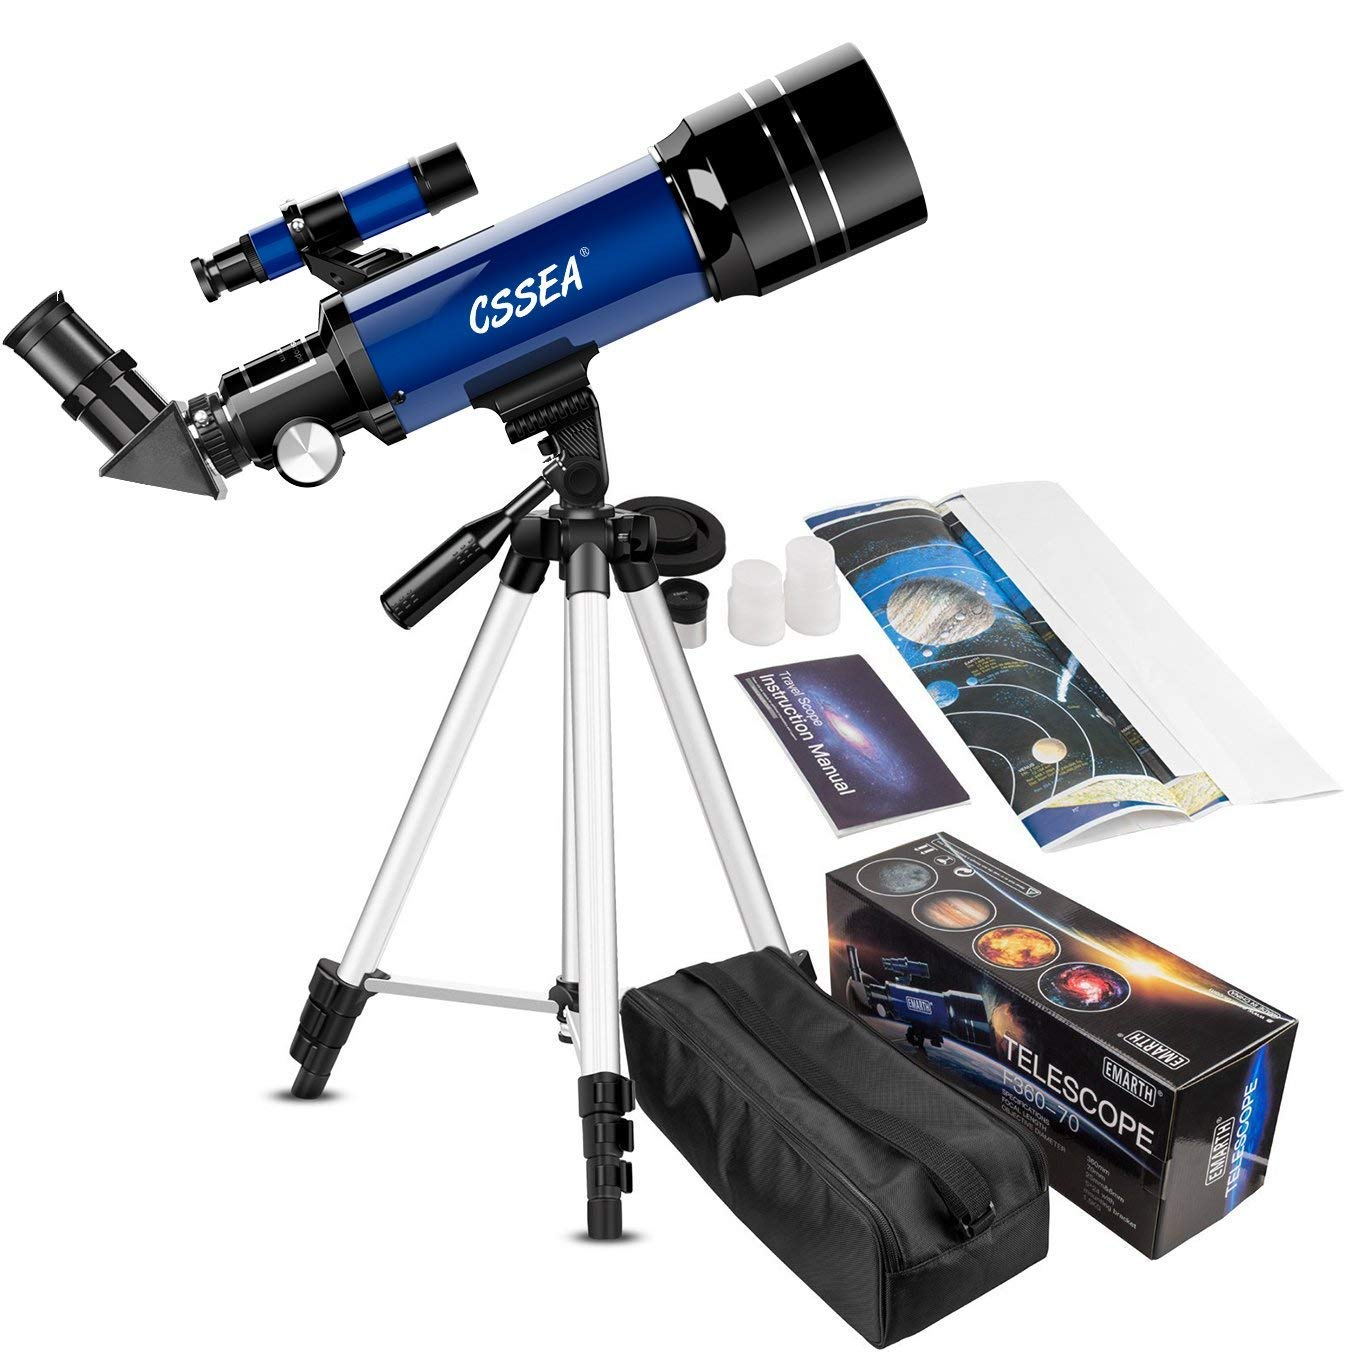 Telescope for Kids Beginners, 70mm Astronomy Refractor Telescope with Adjustable Tripod & Carry Bag- Portable Travel Scope for Adult Children by ECOOPRO